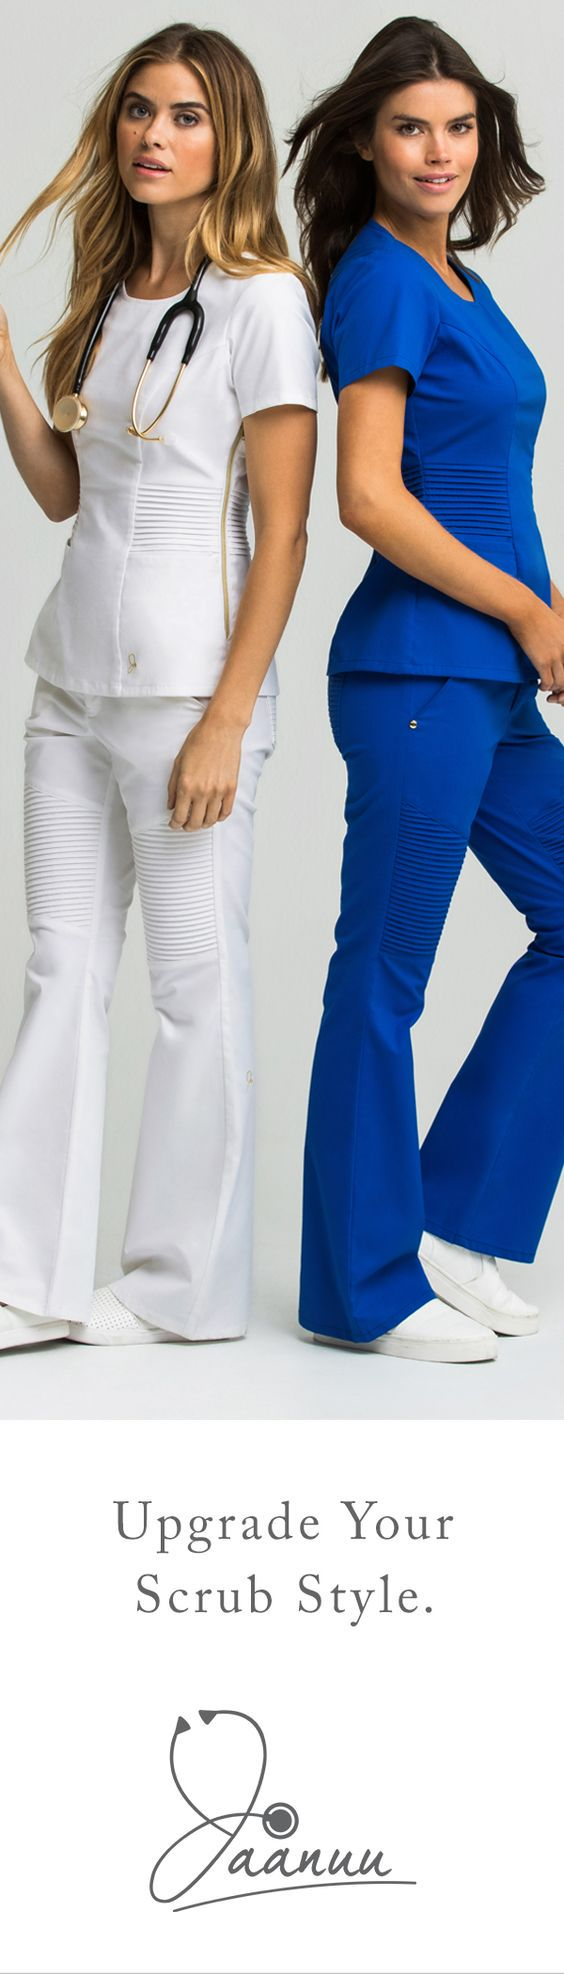 Feel confident in your professional look with Jaanuu, where high-tech fabrics meet high-fashion designs. Upgrade your scrubs today and get FREE shipping + returns. Save 20% on your first order with PIN20.